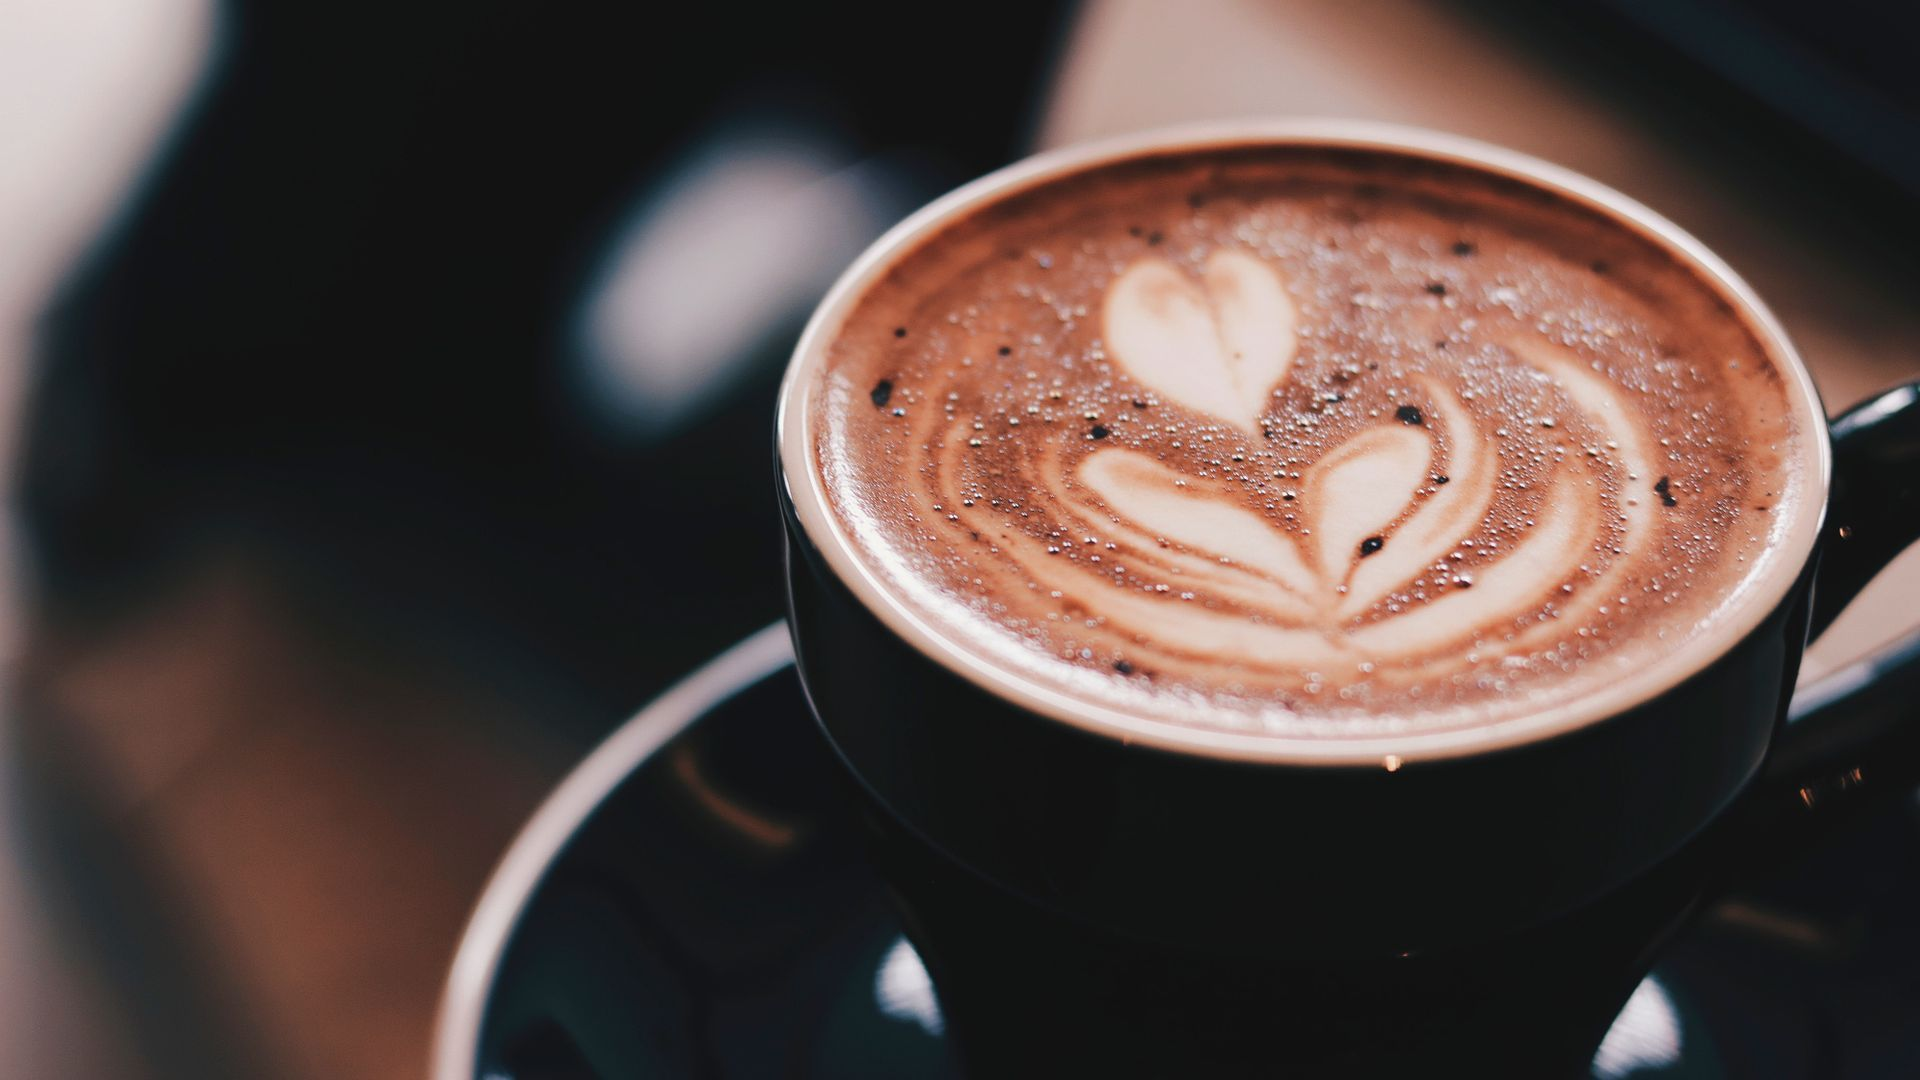 coffee cup images free download